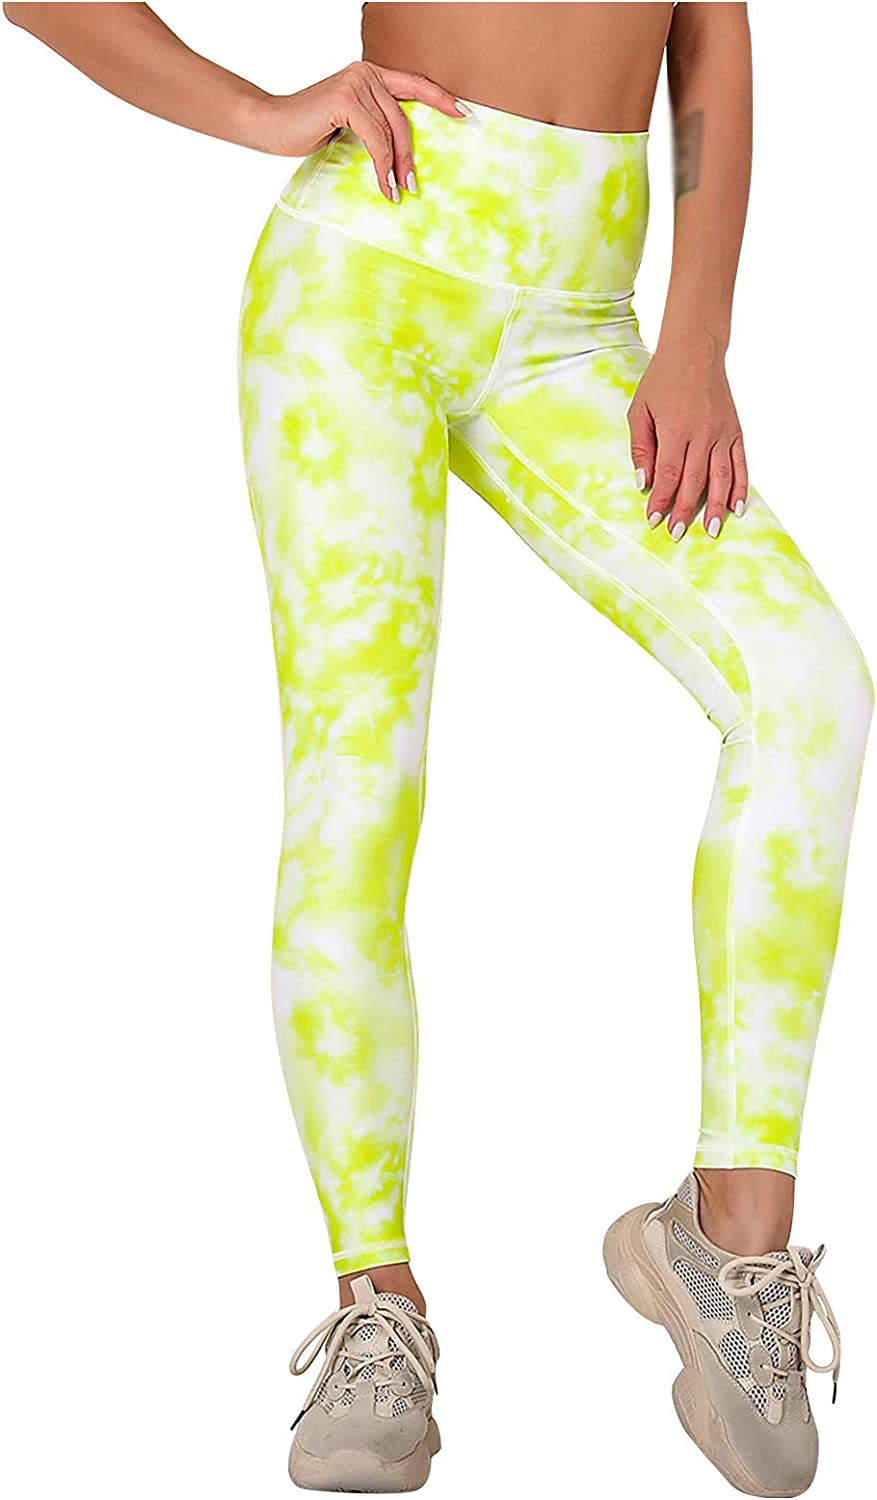 Wocachi High Waist Yoga Pants for Women, Tie Dye Stretch Tummy Control Running Tight Pants Workout Leggings for Women